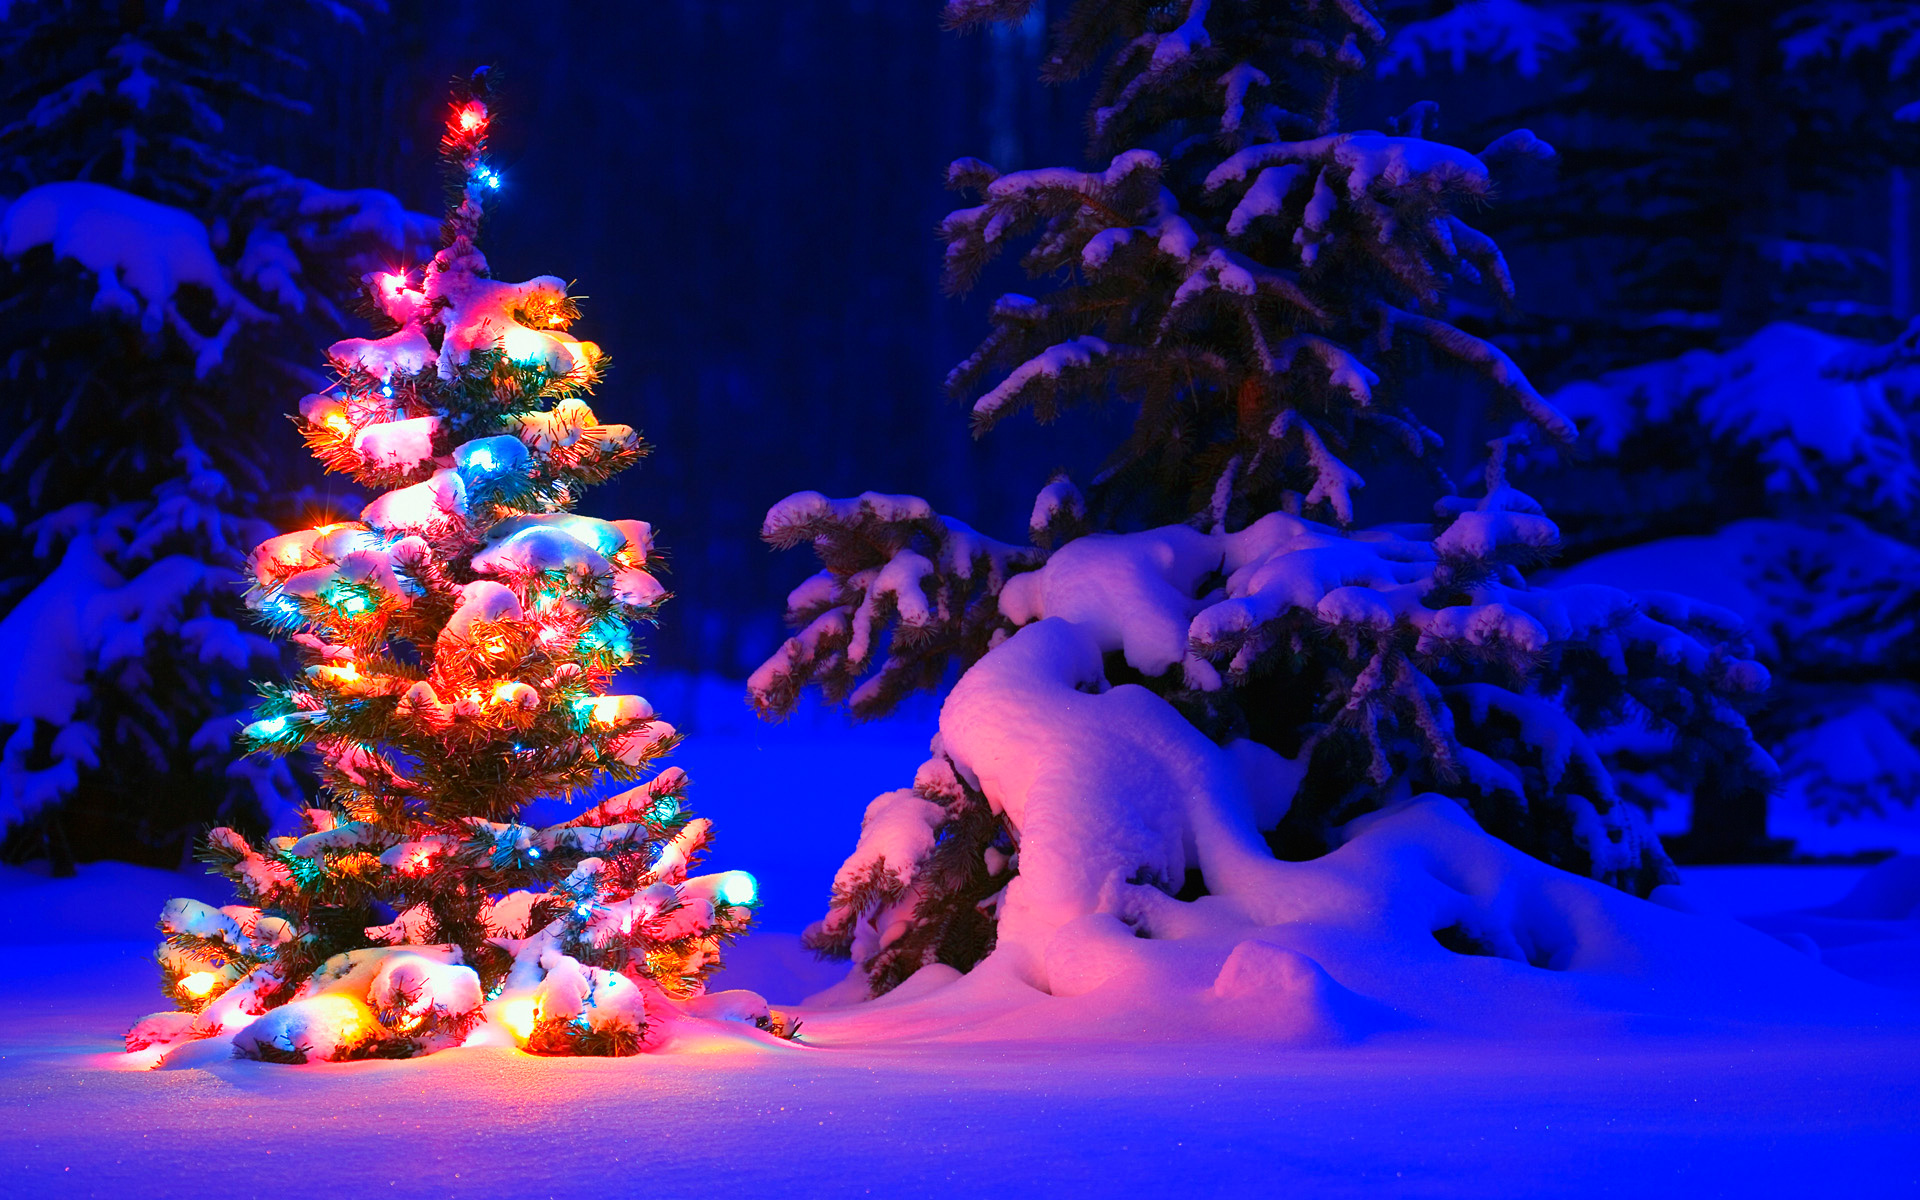 1920x1200 - Wallpaper for Christmas 44